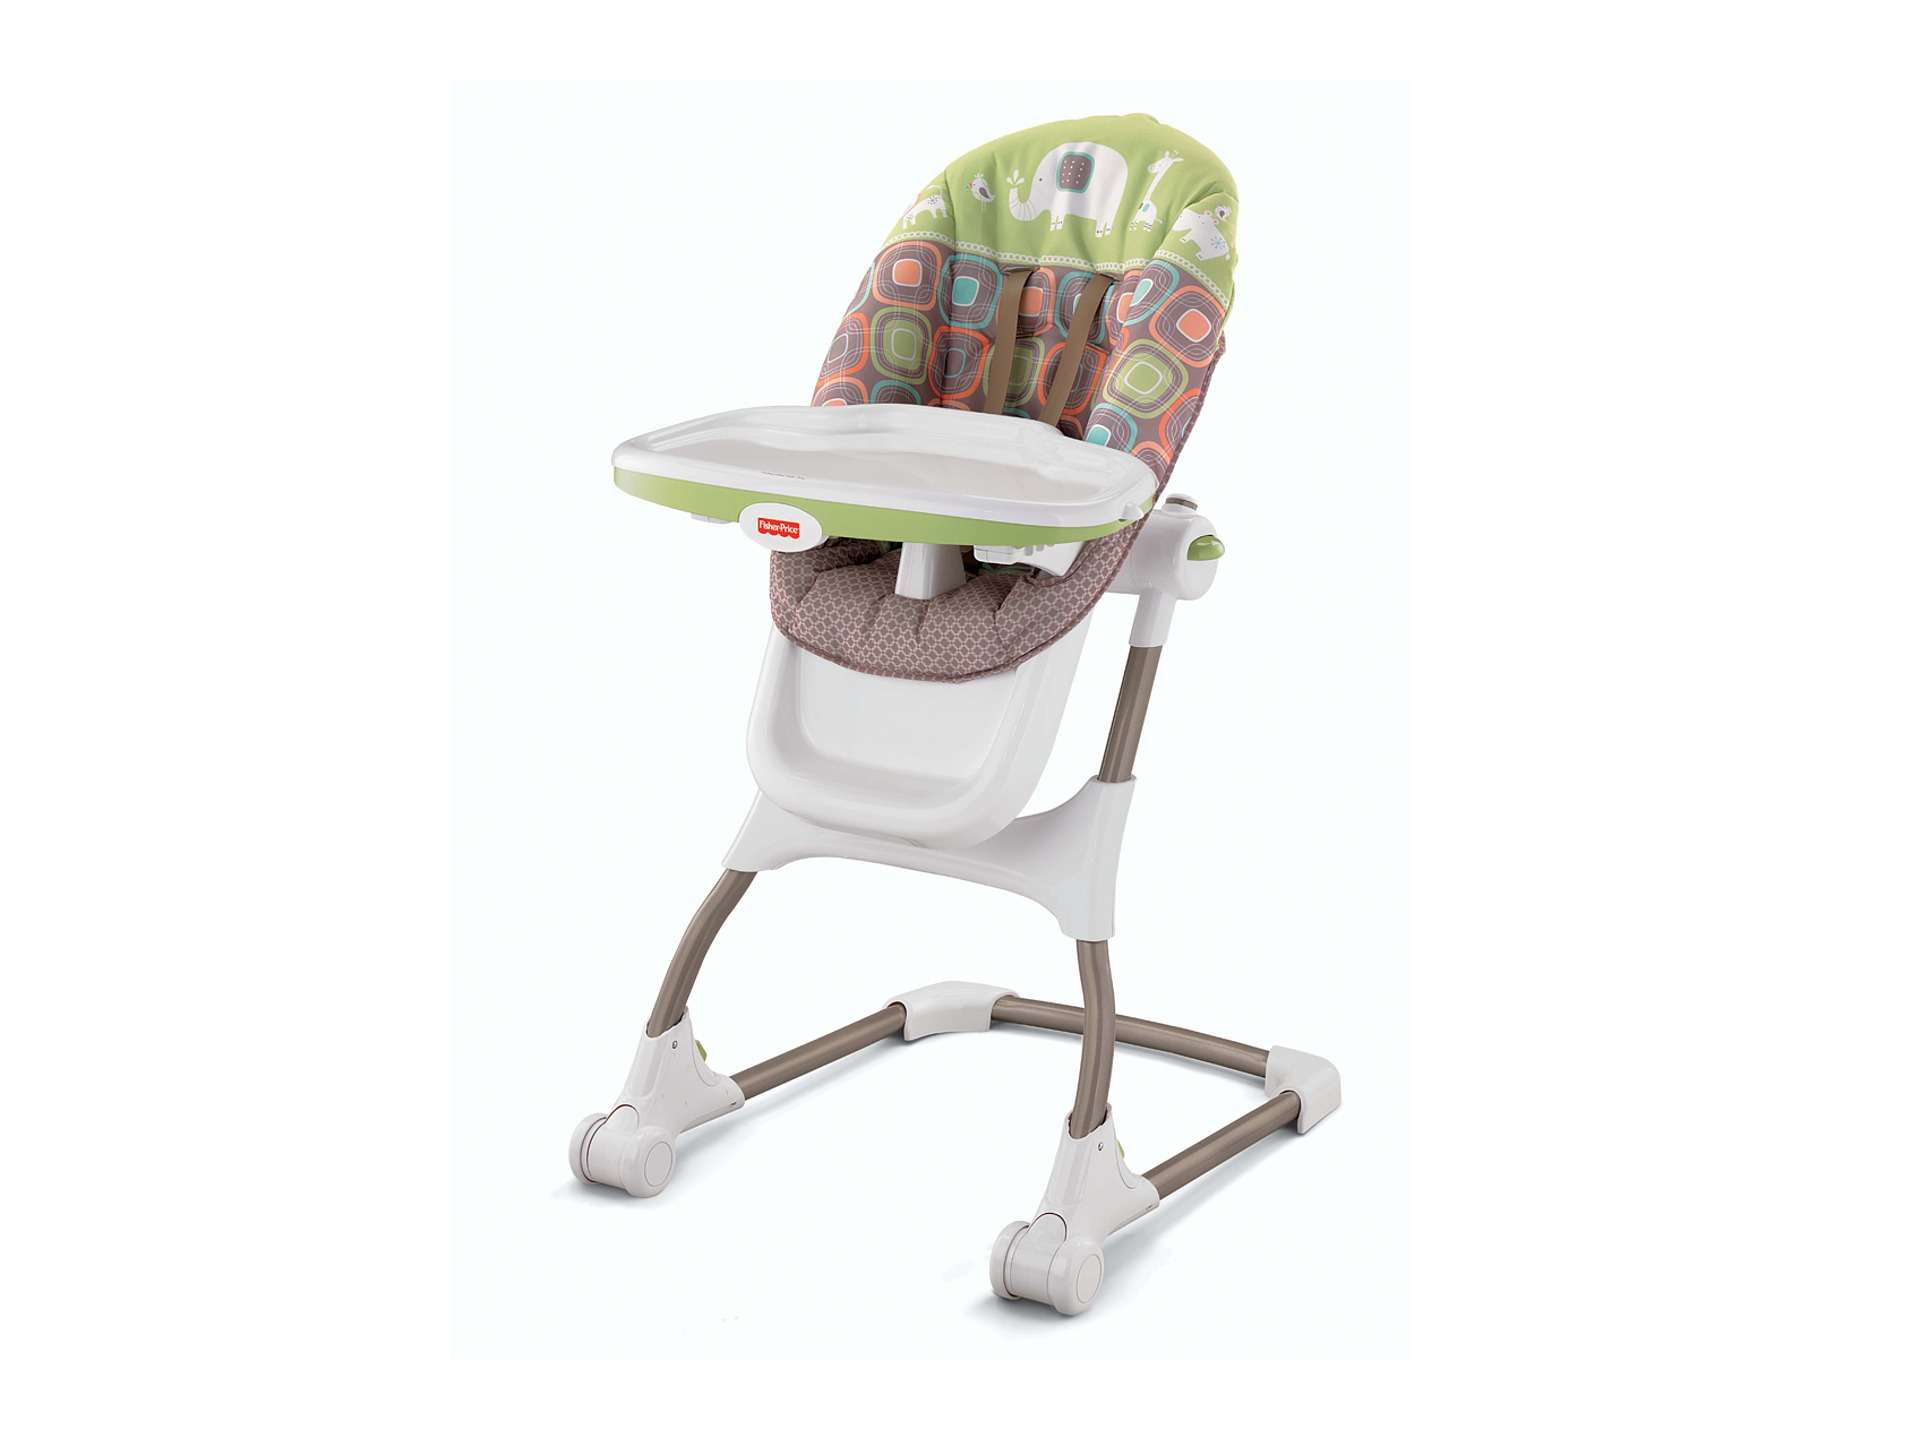 fisher price high chair seat pool deck lounge chairs ez clean coco sorbet zappos